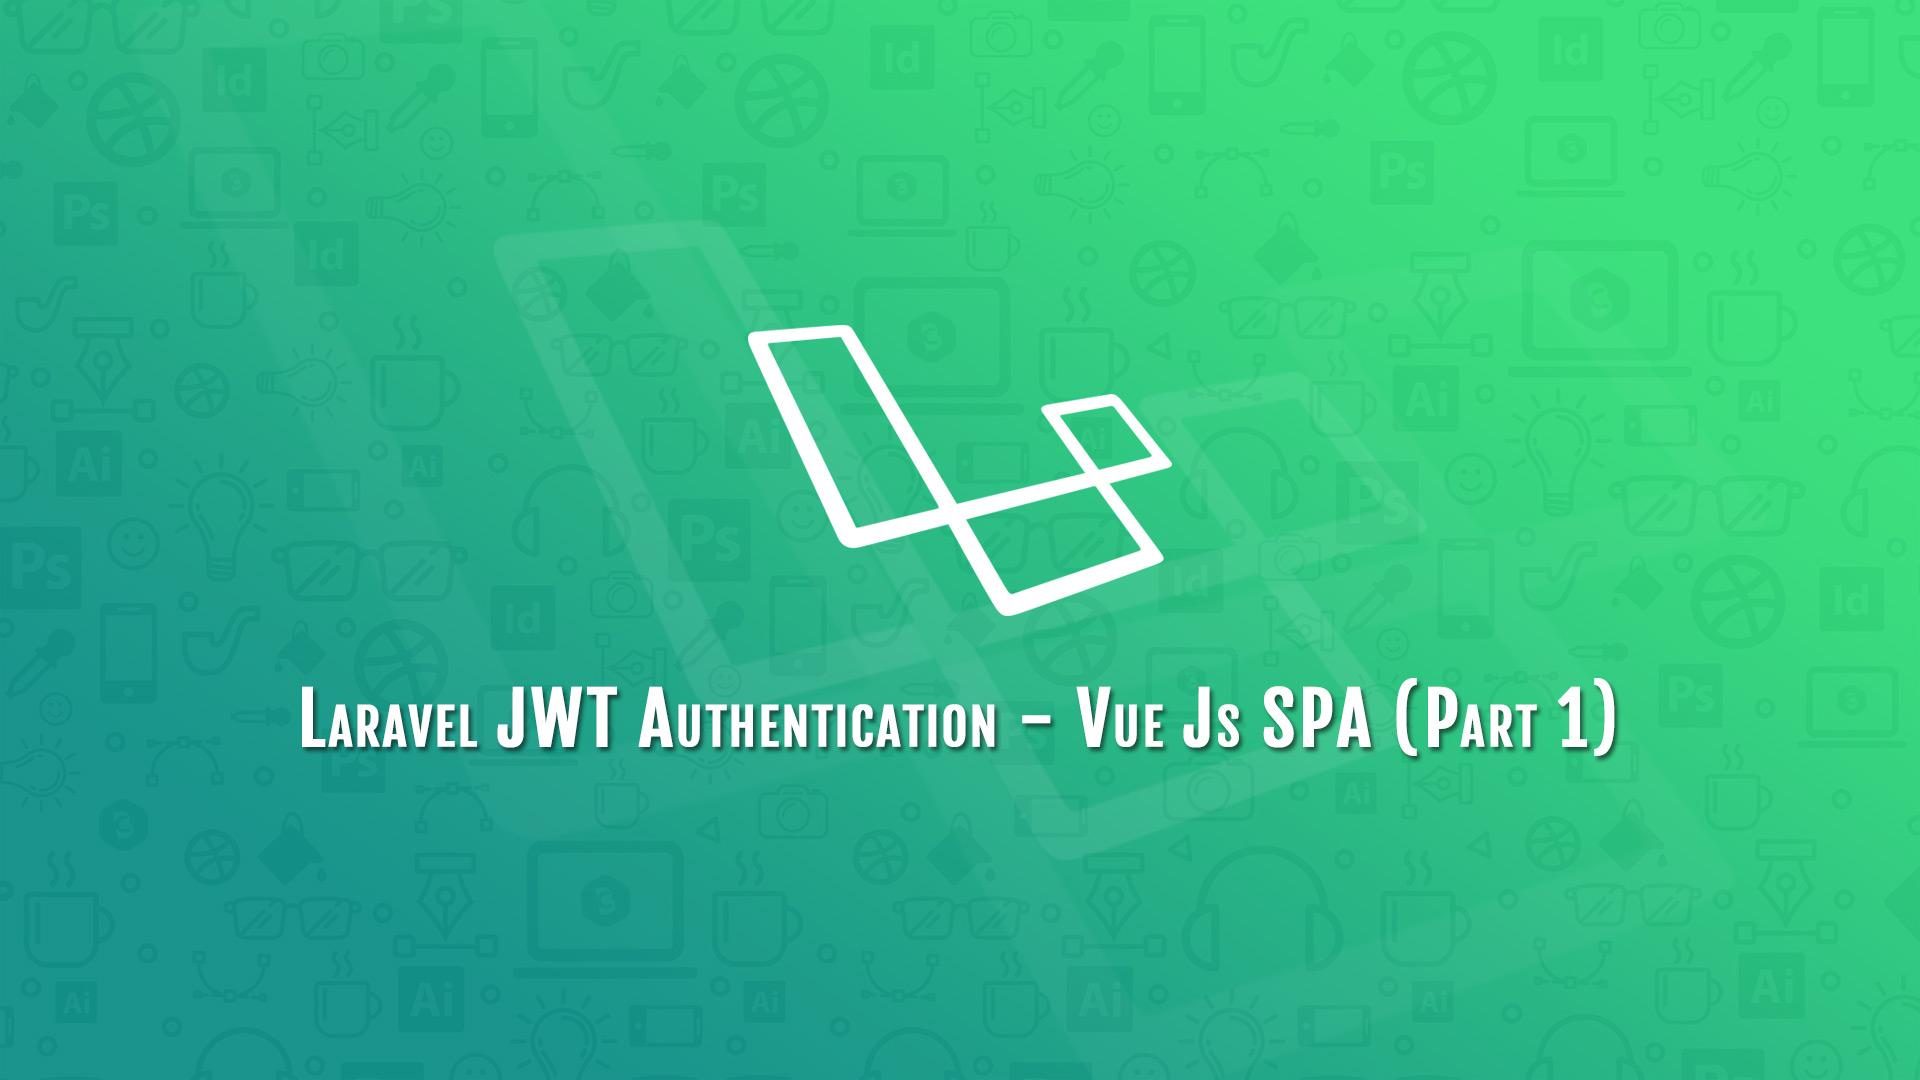 Laravel JWT Authentication - Vue Js SPA (Part 1) - Code Briefly